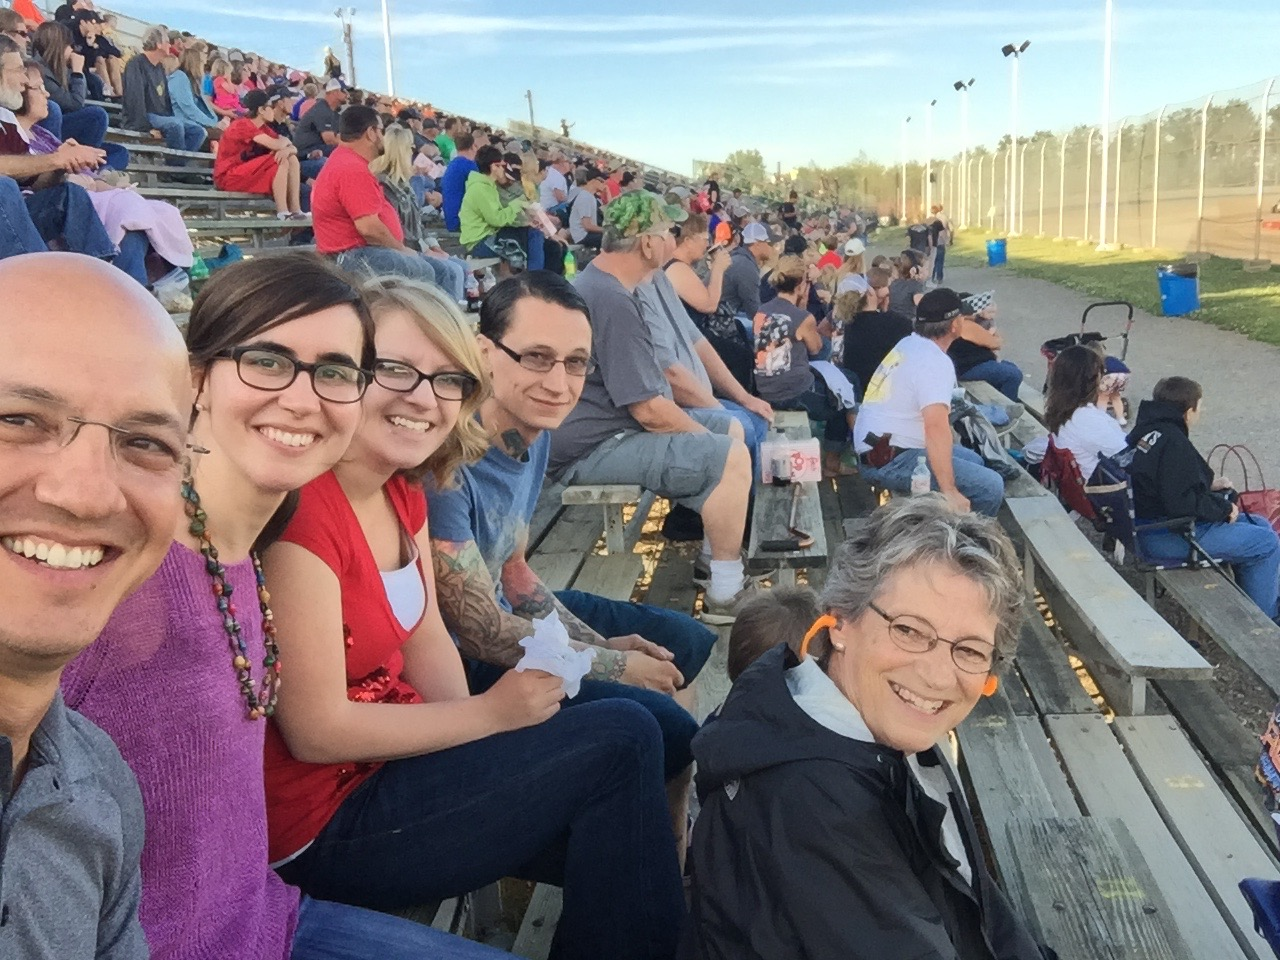 Geoff's mom with her sons   and their wives  take in some sports